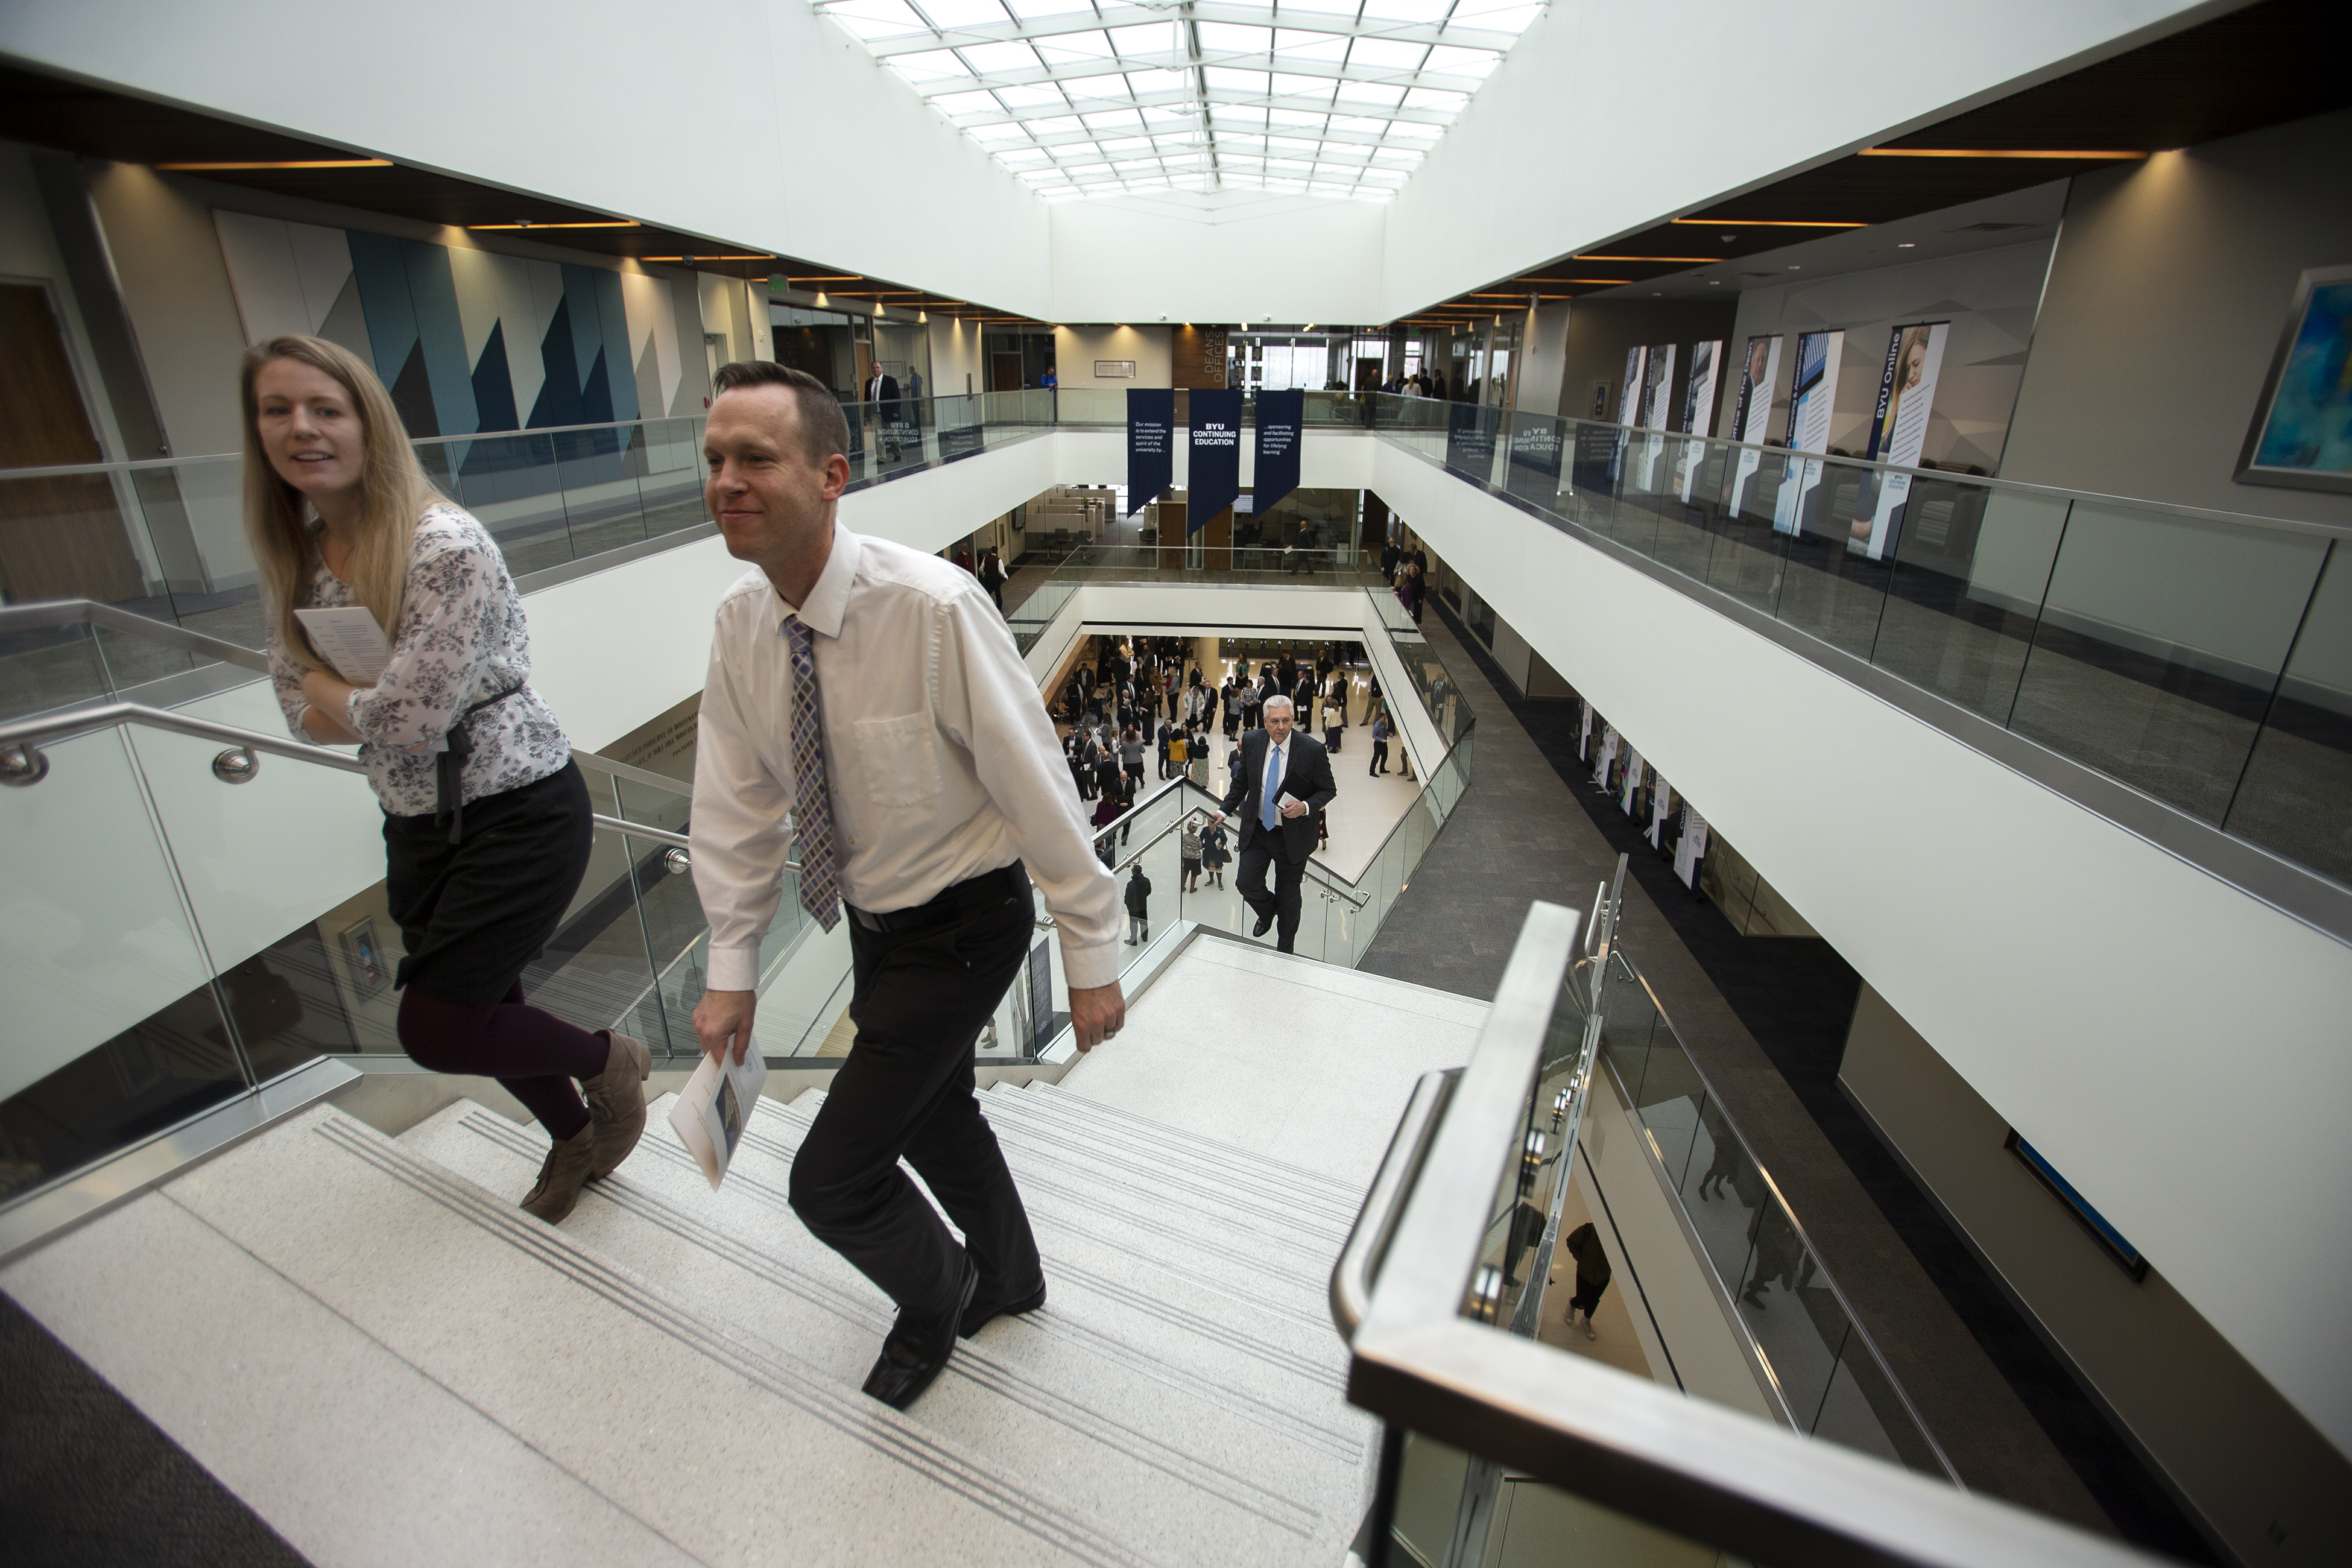 Jessica Bryan and Joel Hemingway walk up the stairs of the Caroline Hemenway Harman Building after Elder Ulisses Soares of the Quorum of the Twelve Apostles gave the rededication prayer at BYU in Provo, Utah, on Tuesday, Feb. 5, 2019.